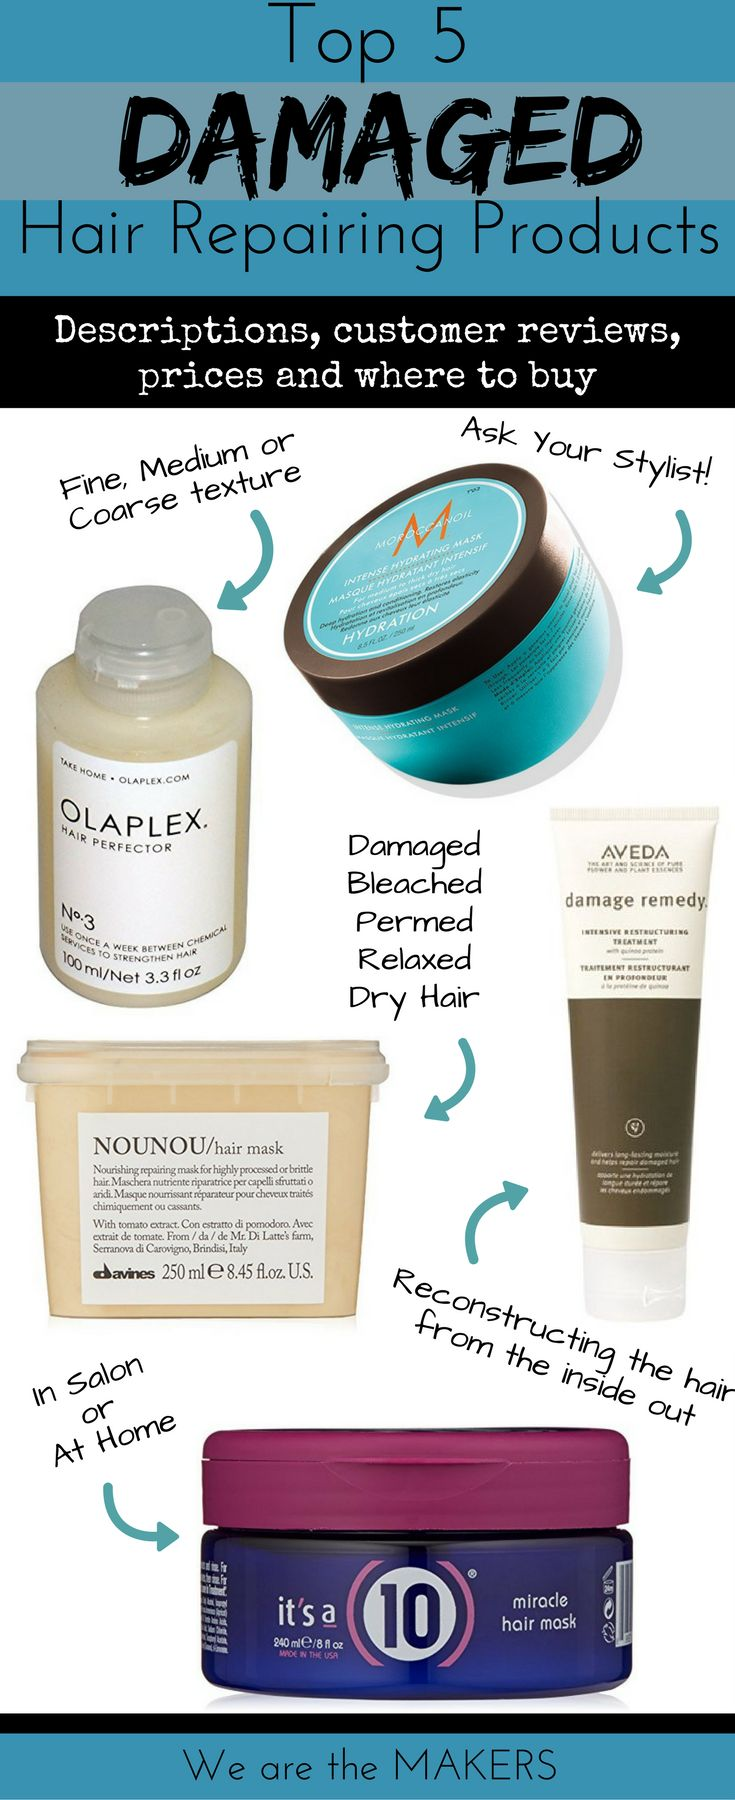 The best hair products for damaged hair repair. Deep conditioning treatments for...